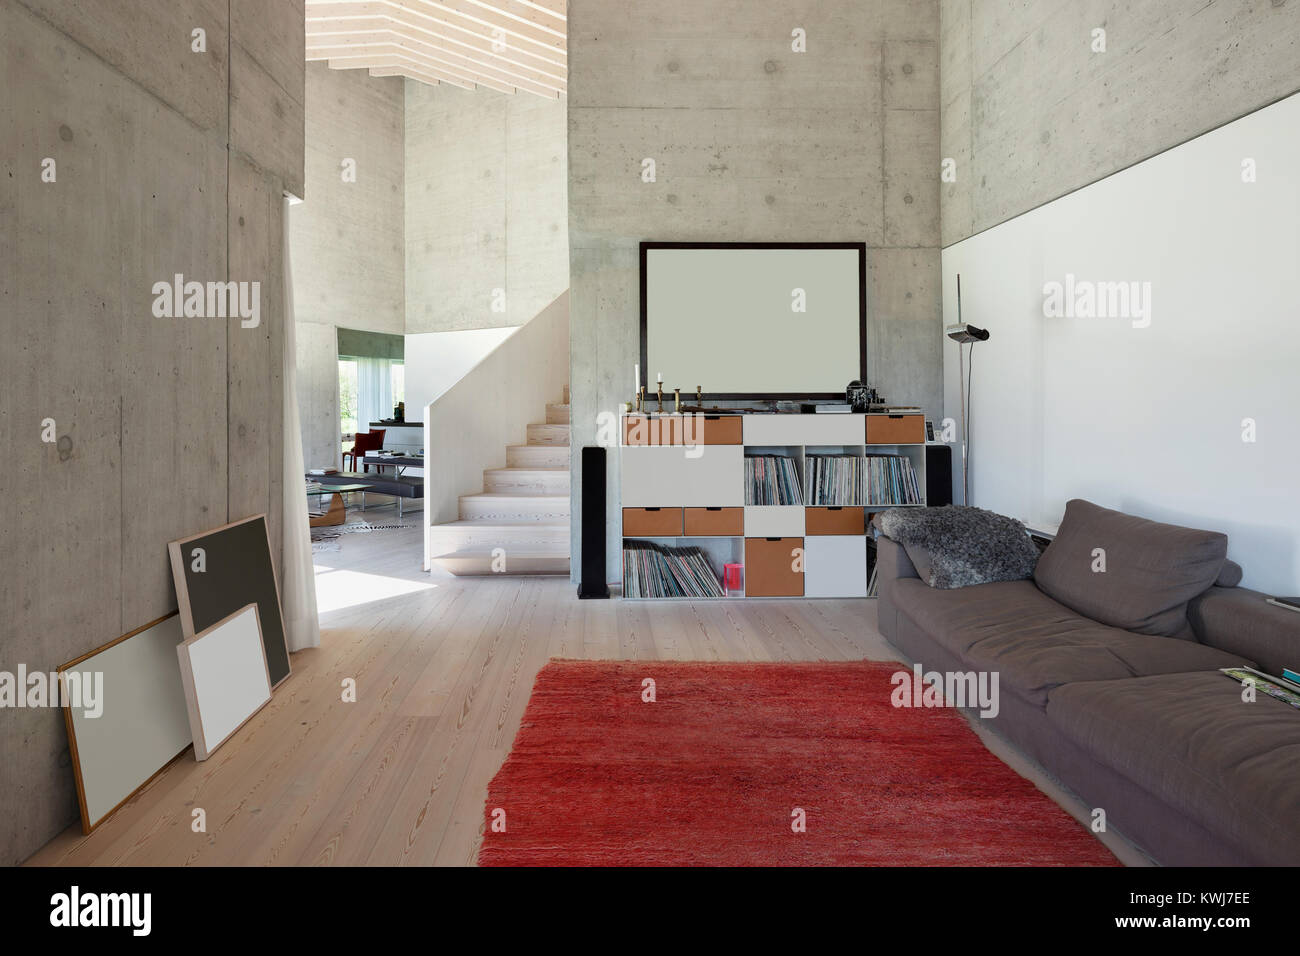 interior of a villa modern living room with red carpet concrete